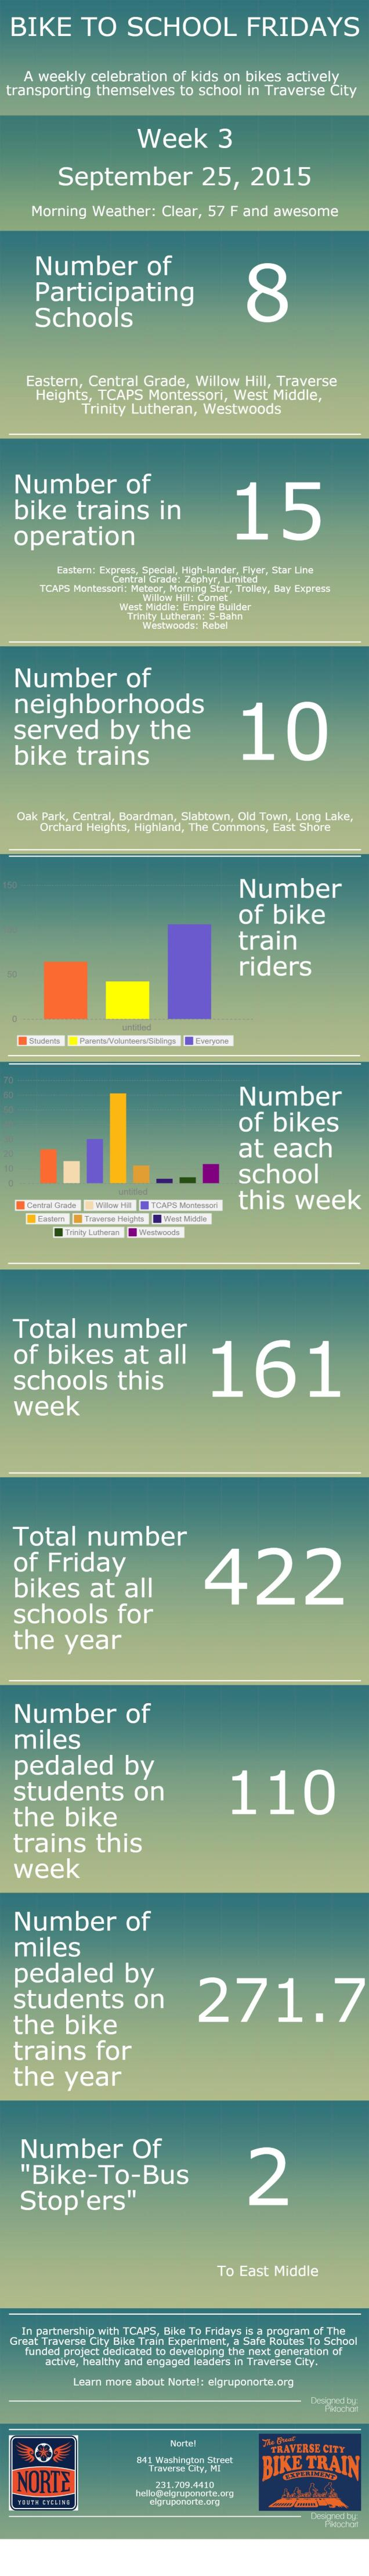 Bike To School Fridays- Week 3